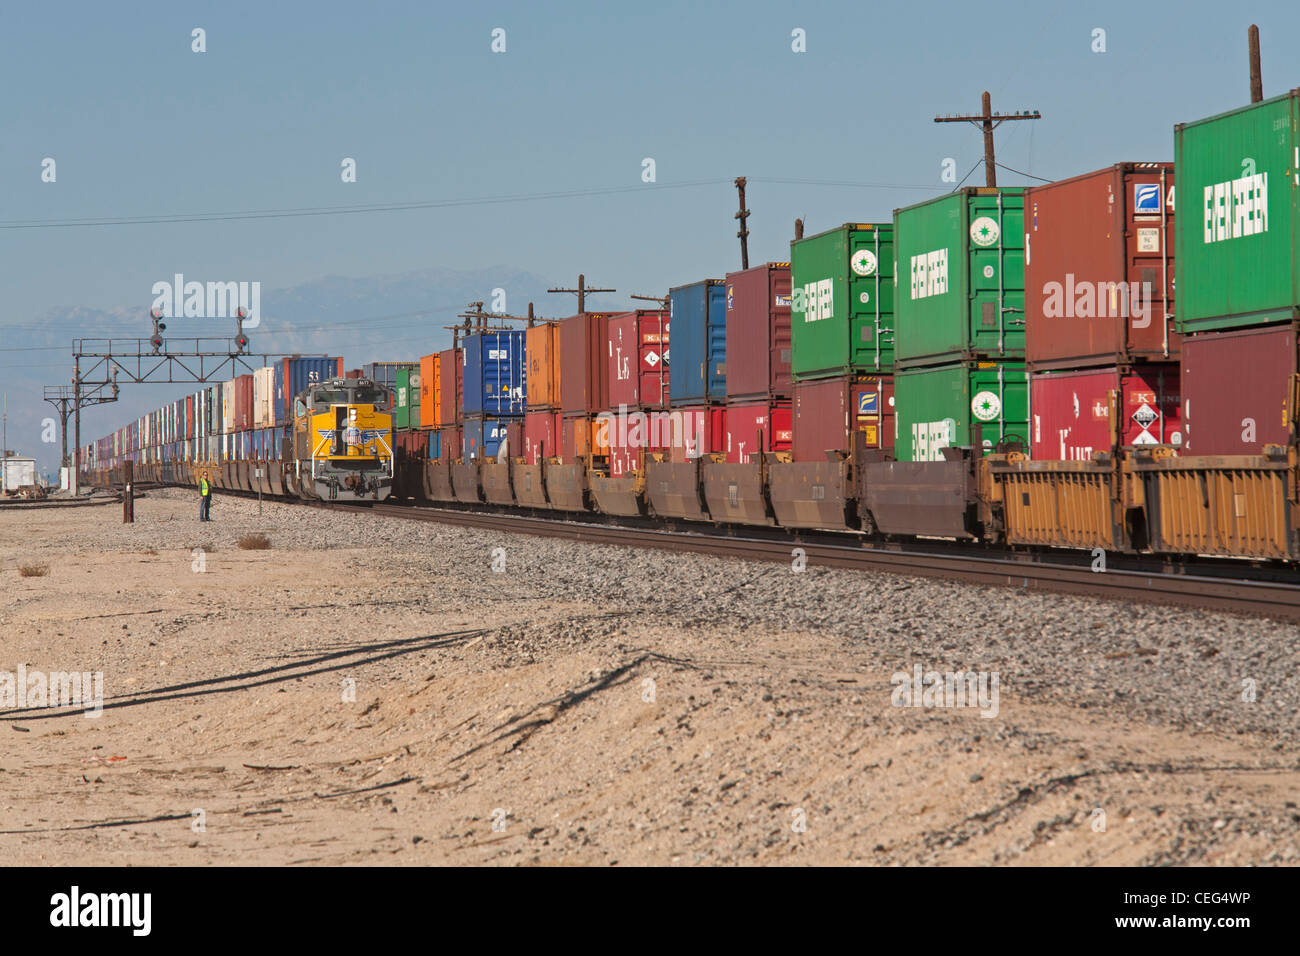 Freight Trains Carrying Intermodal Shipping Containers - Stock Image